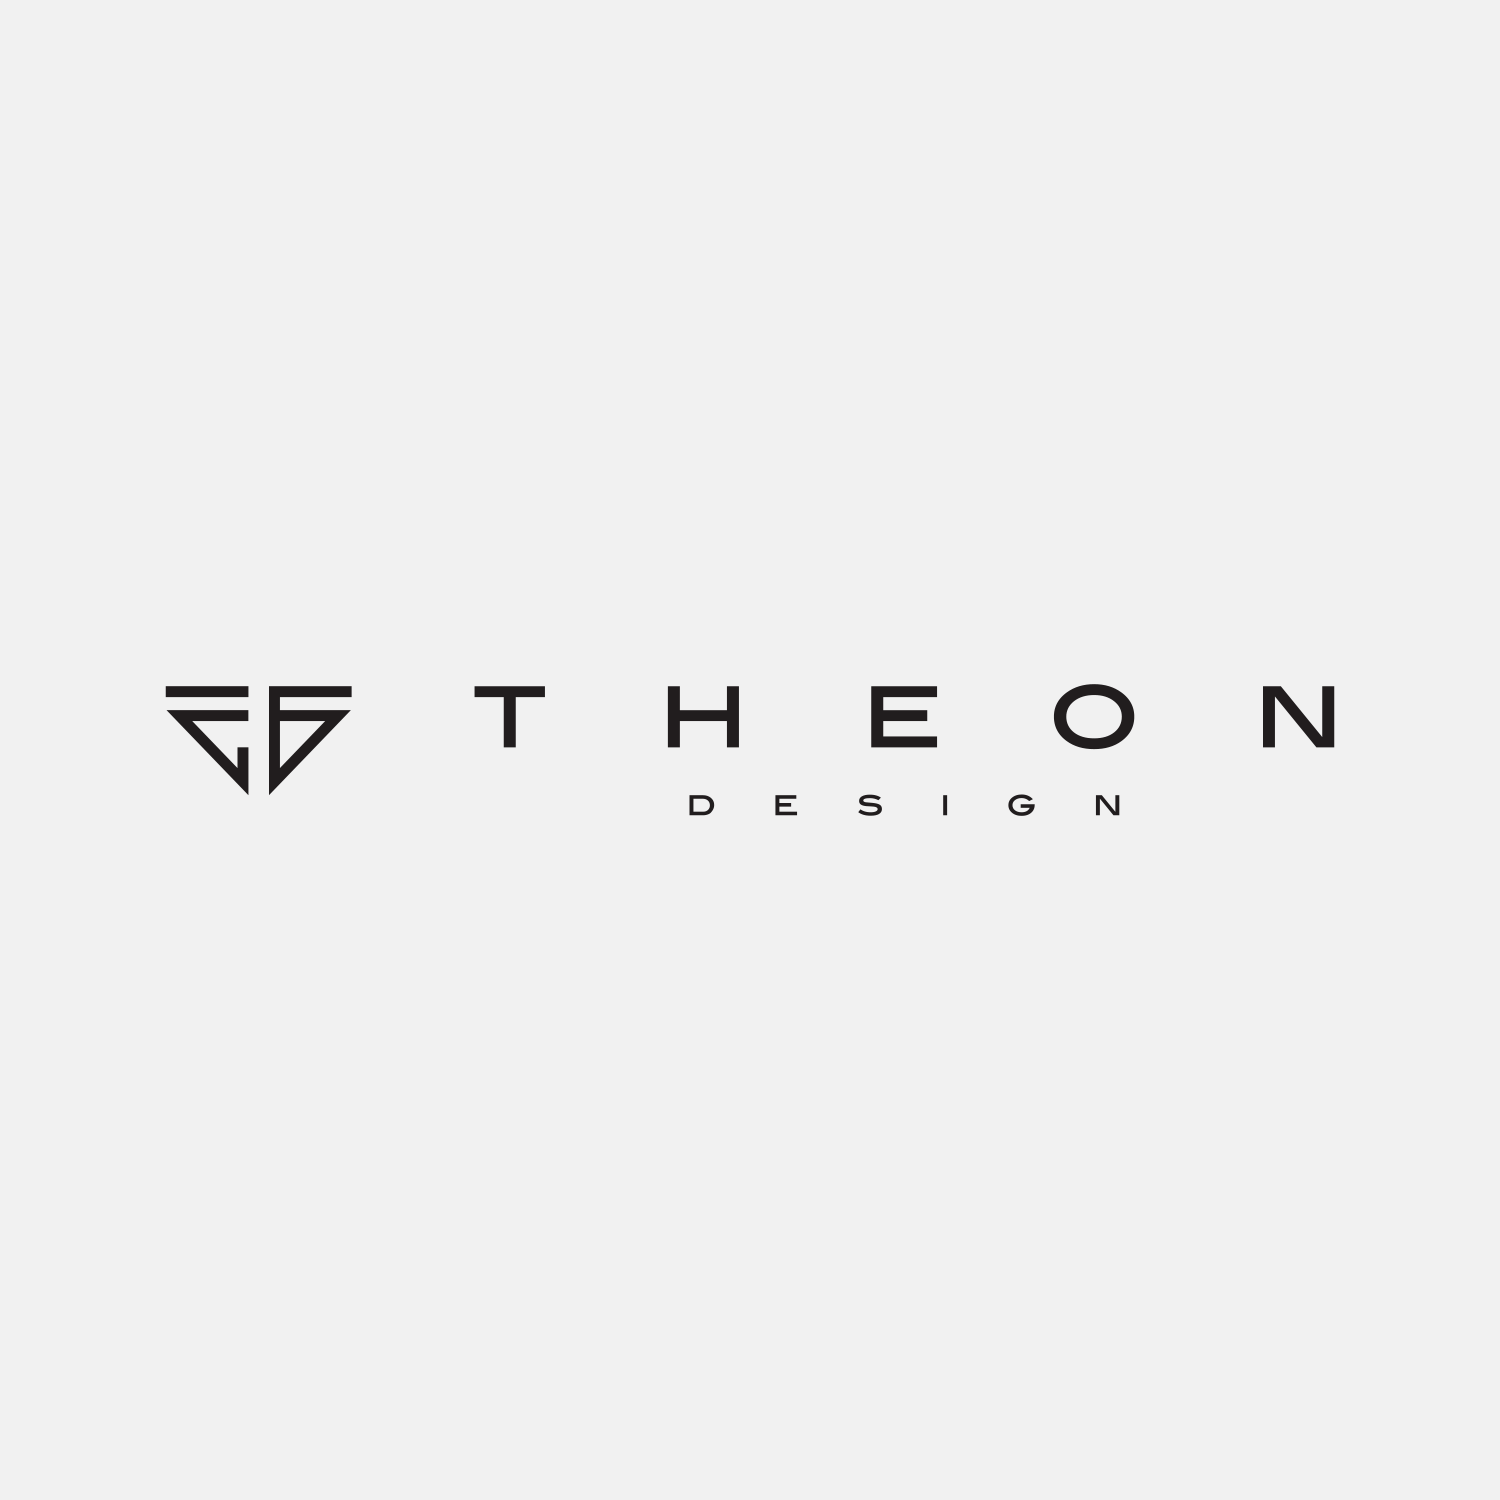 Theon logo design